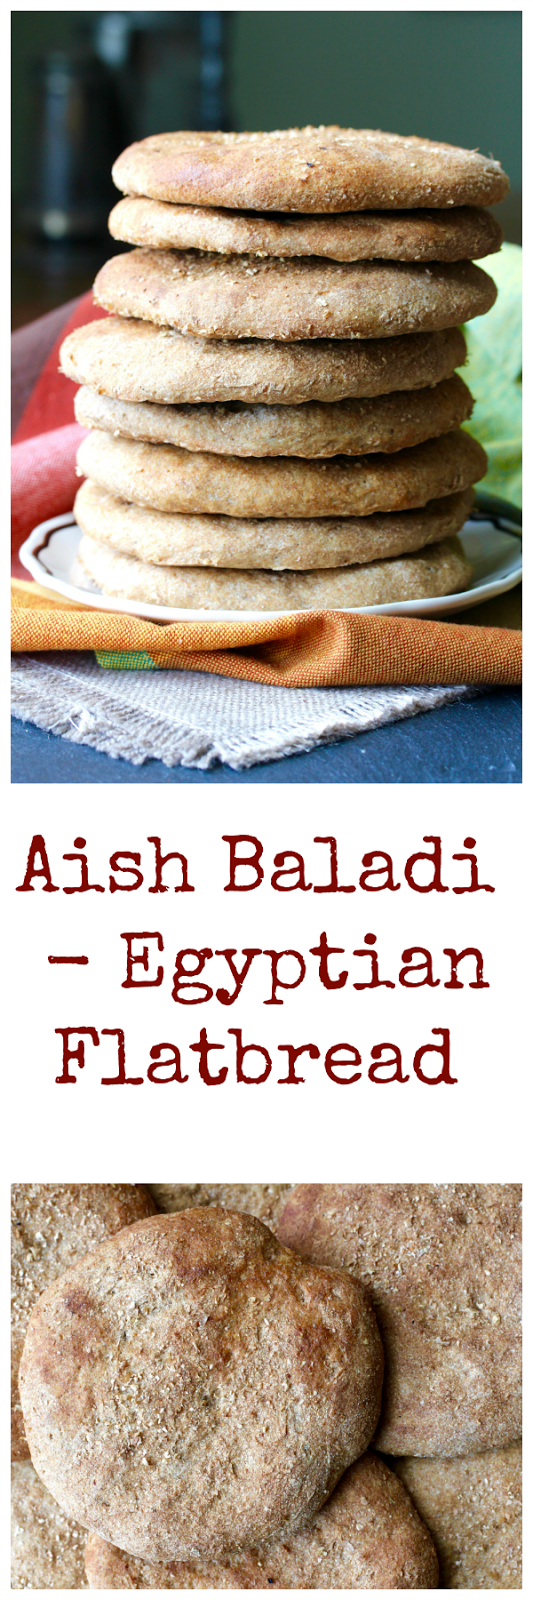 Aish Baladi is an Egyptian whole wheat flat bread that looks a lot like pita bread, but is unique to Egypt.